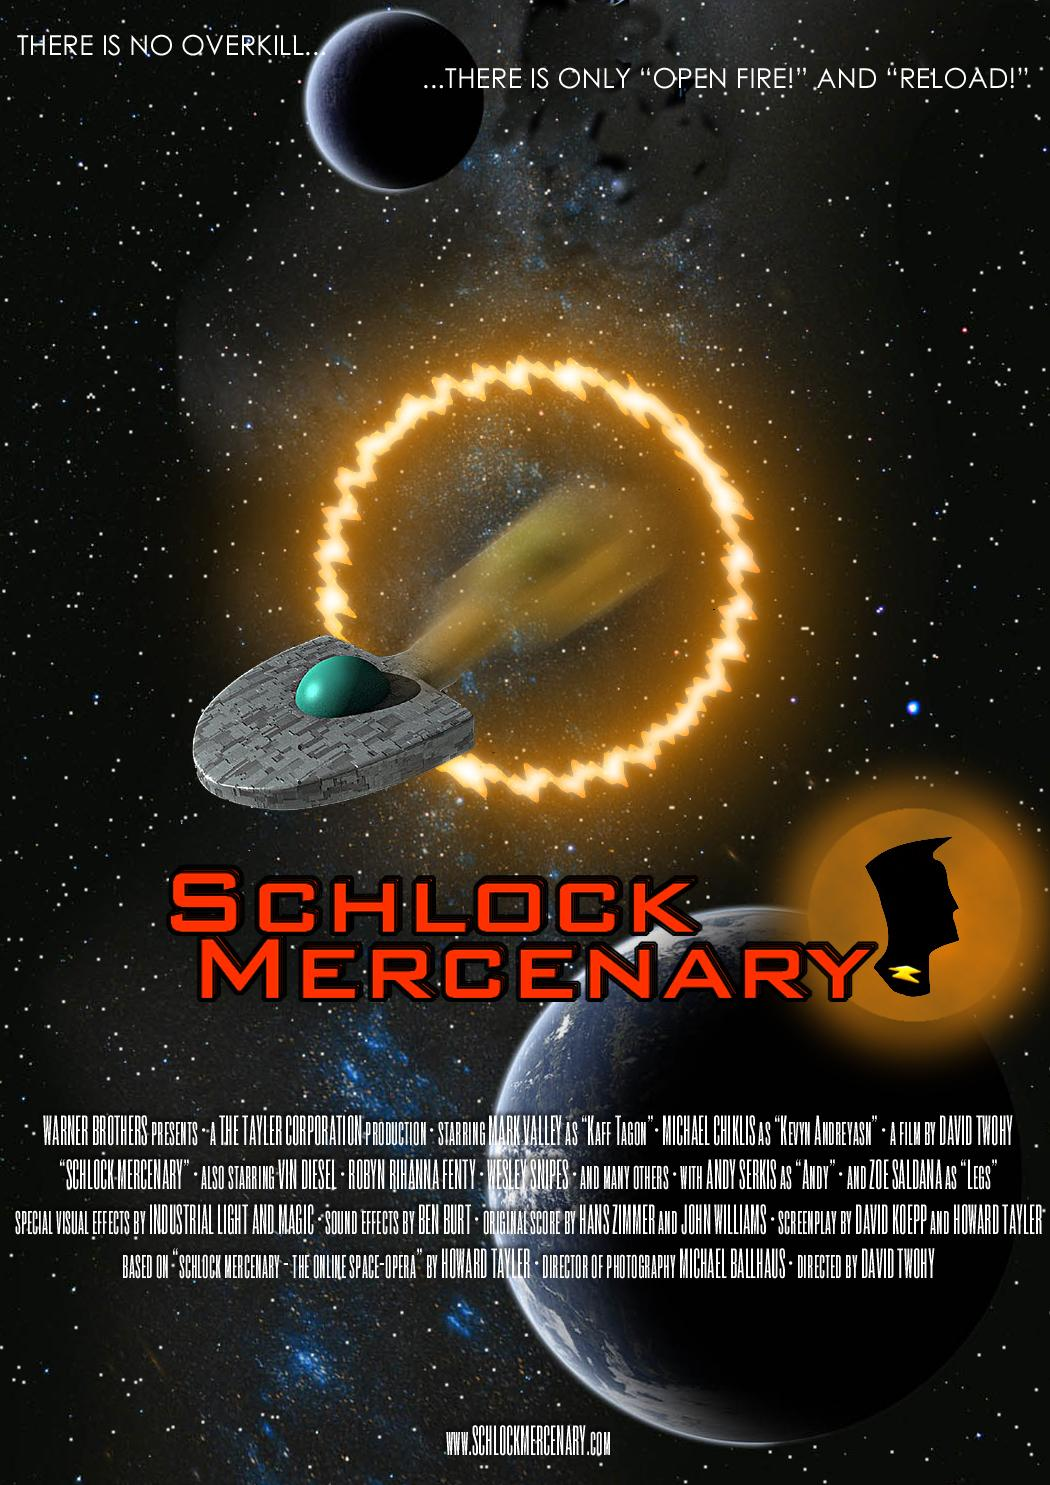 Schlock Mercenary Real Film Movie Poster (fake) by Lexxyzgraphix